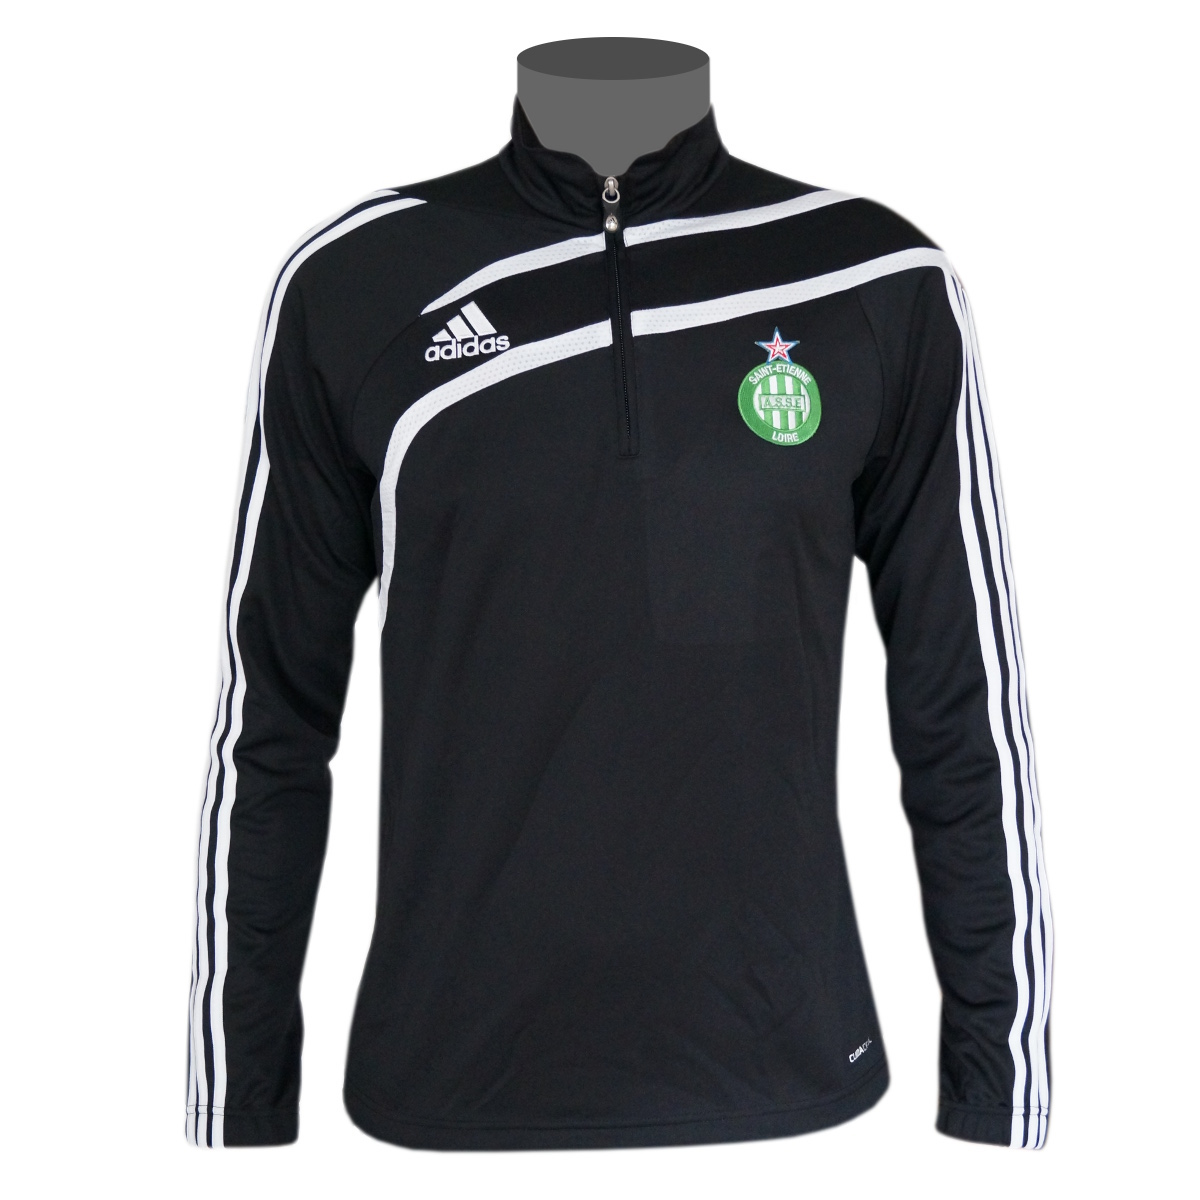 about adidas as saint etienne sweatshirt herren sport pullover schwarz. Black Bedroom Furniture Sets. Home Design Ideas